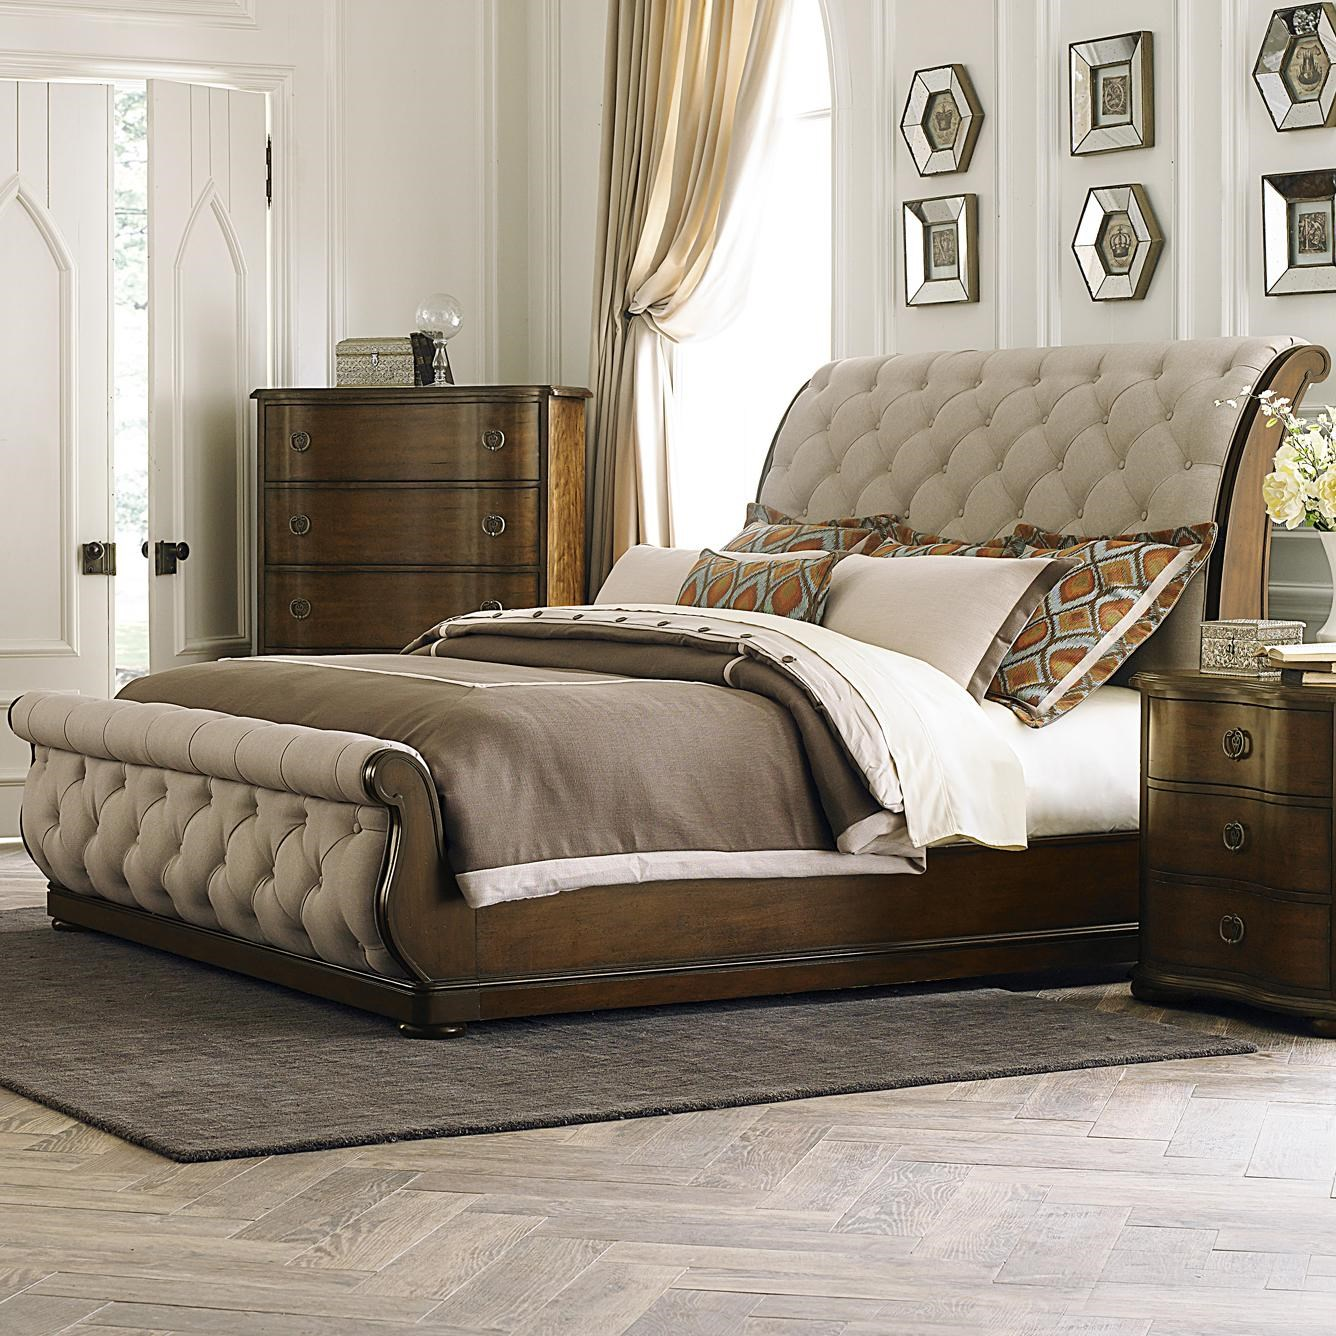 Bed Designs And Laminates To Accentuate Your Homes Interiors